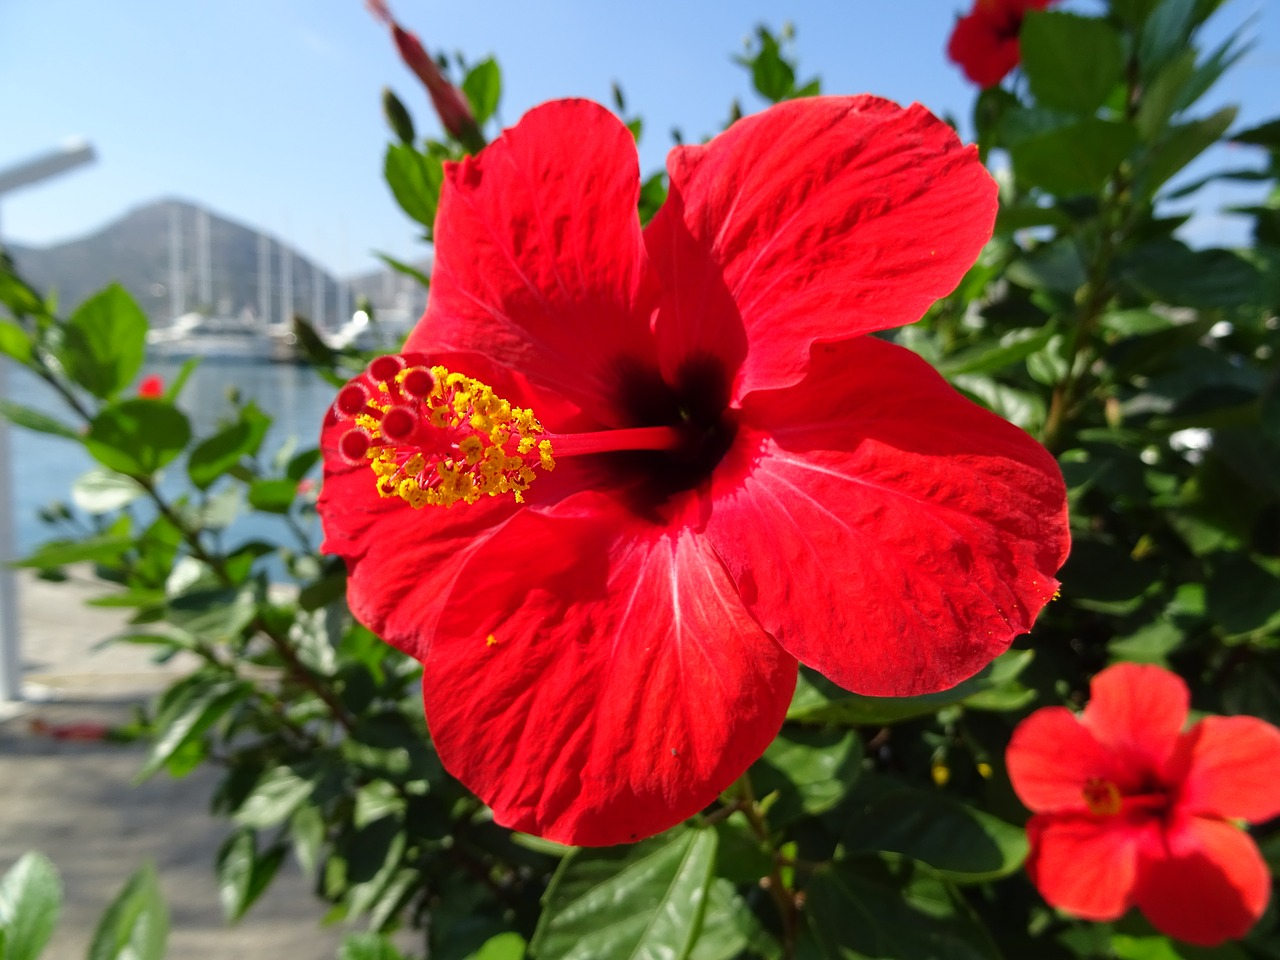 Sipping Some Hibiscus to reduce Hypertension